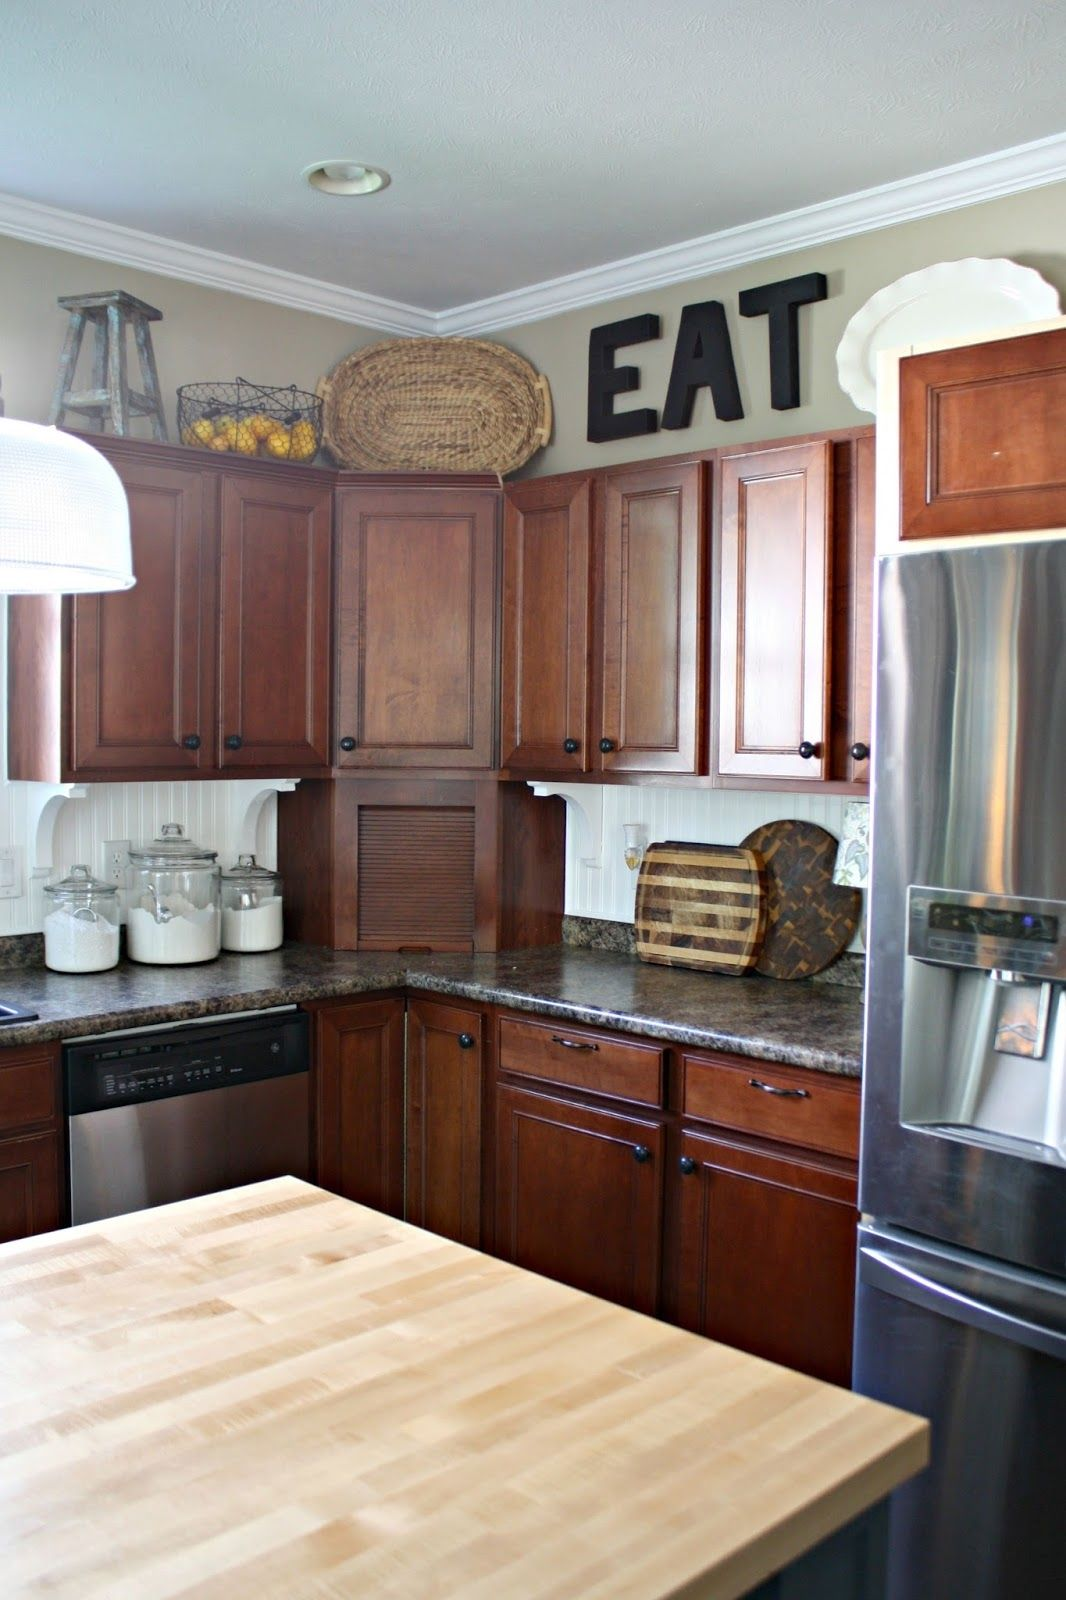 kitchen cabinets that dont go to the ceiling kitchen cabinets kitchen renovation trendy on kitchen cabinets to the ceiling id=20380